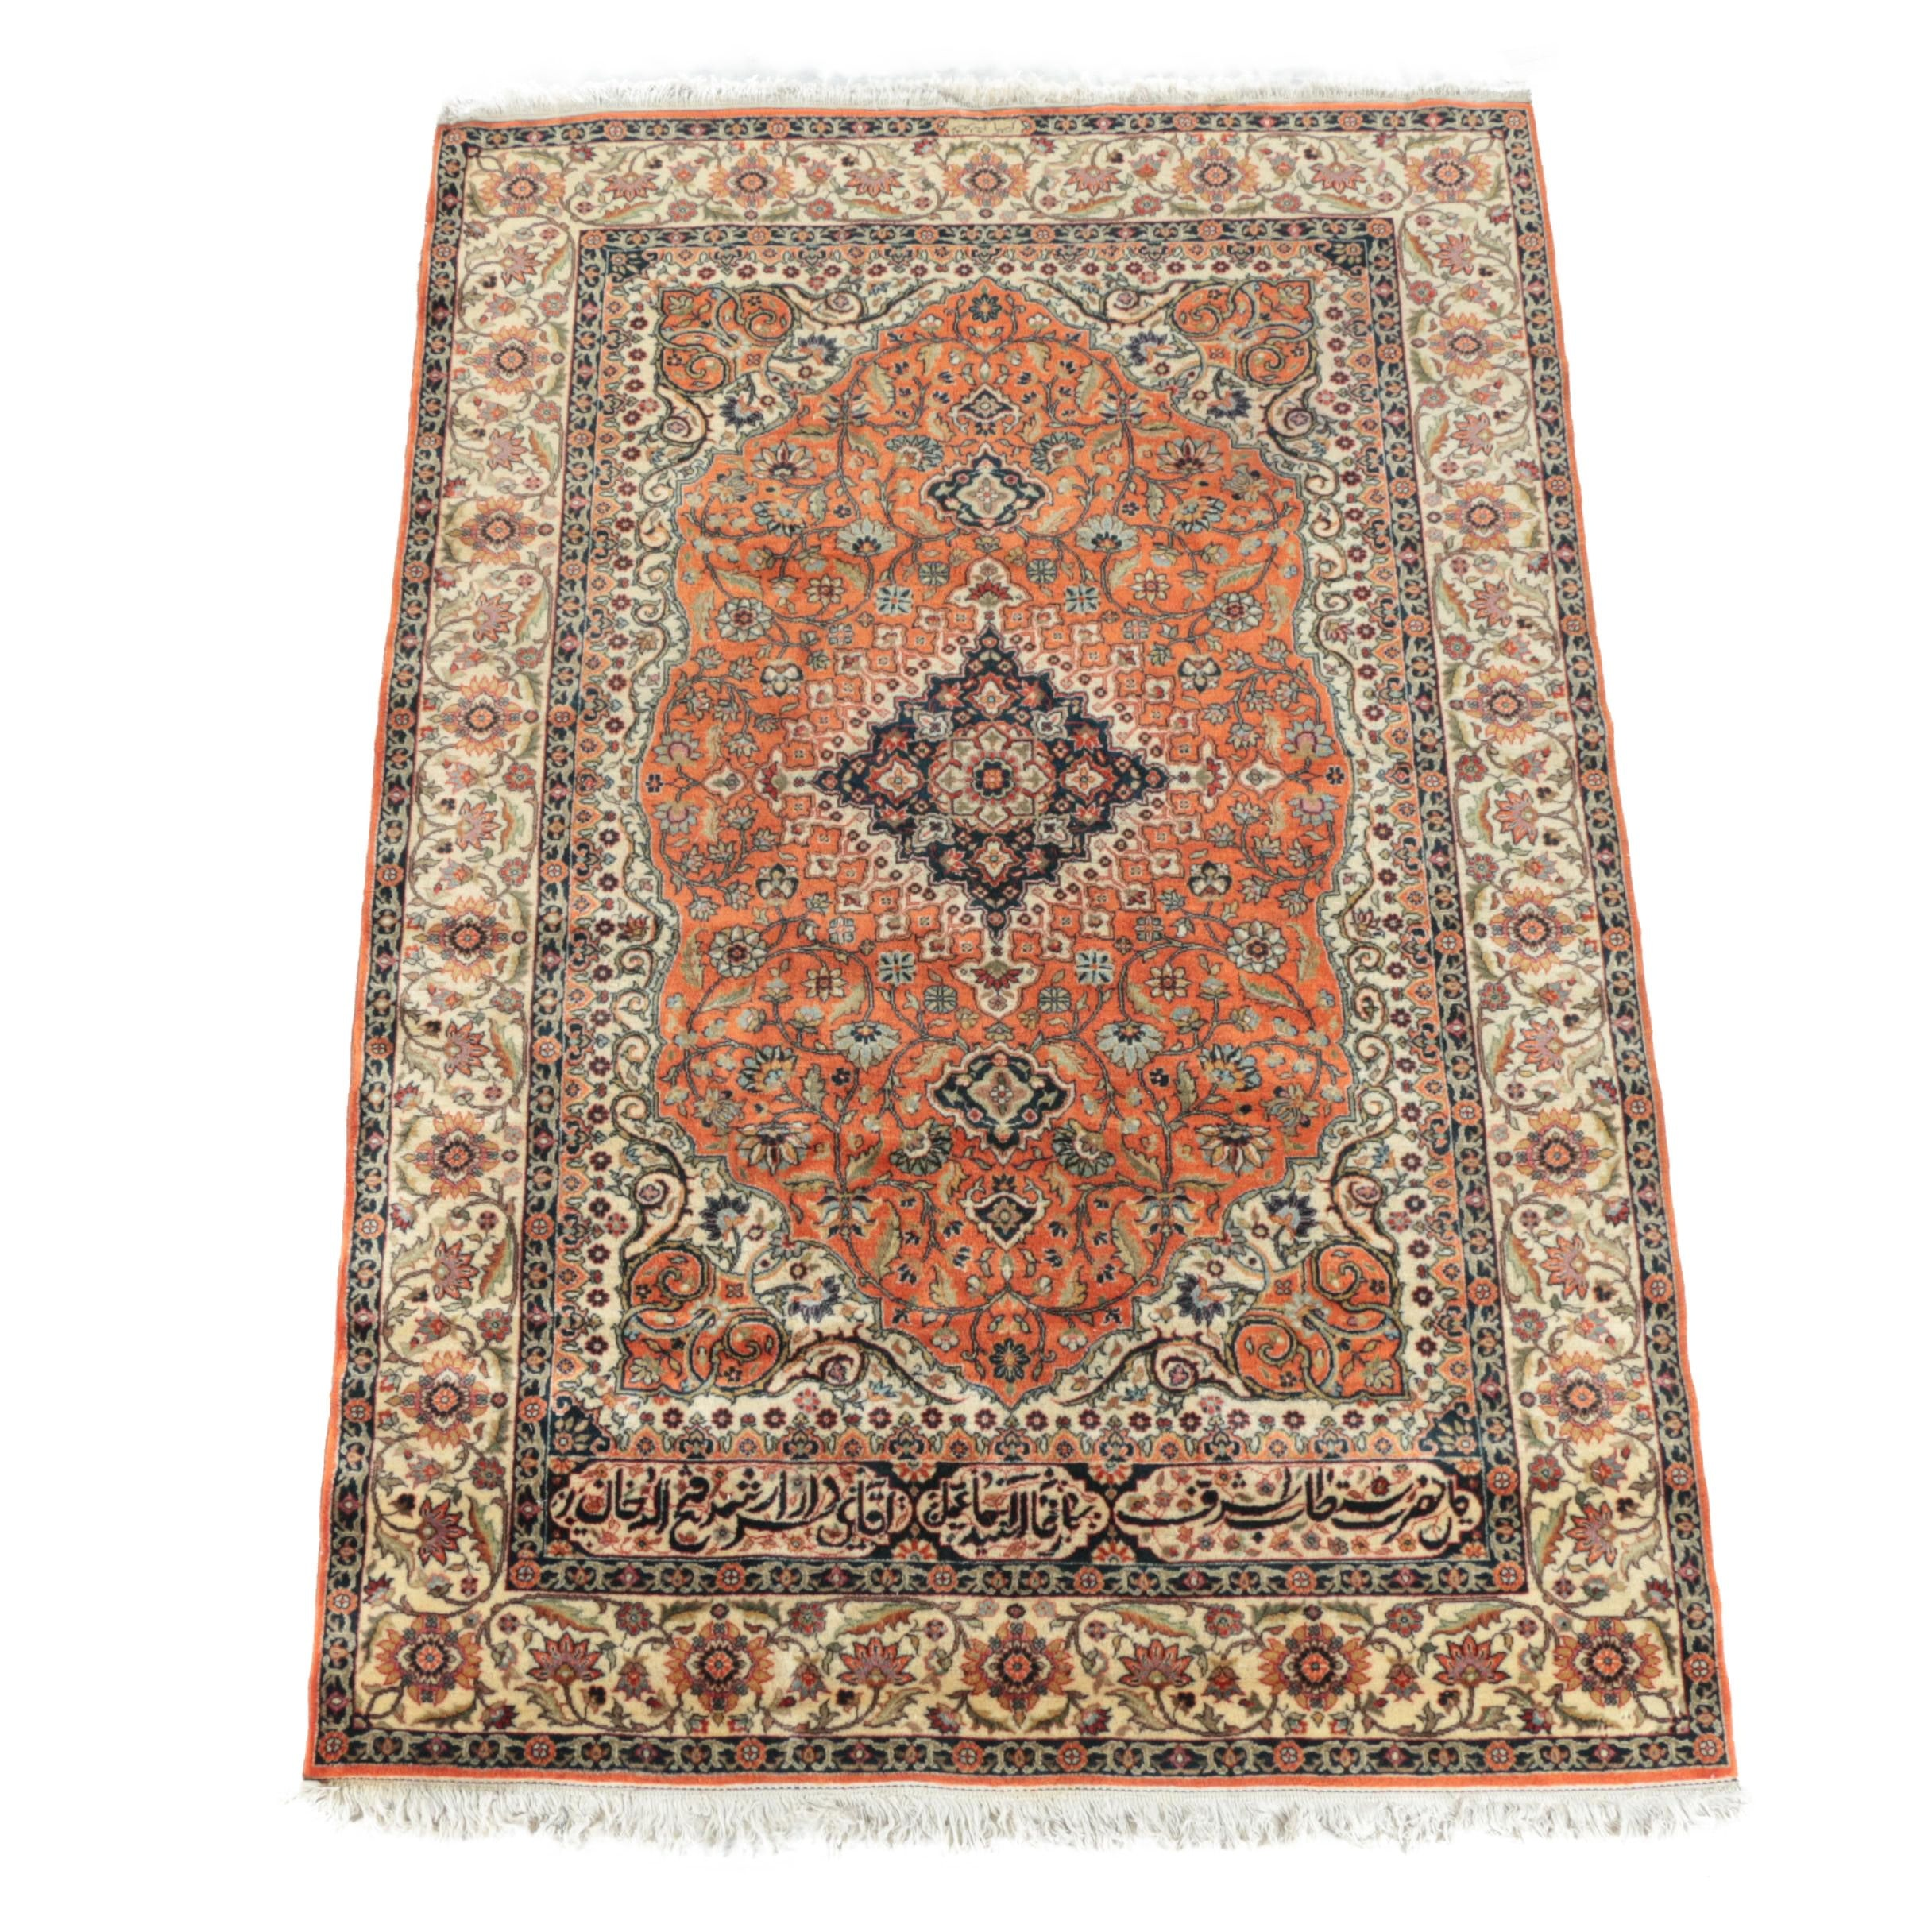 Finely Hand-Knotted Persian Tabriz Area Rug with Inscriptions